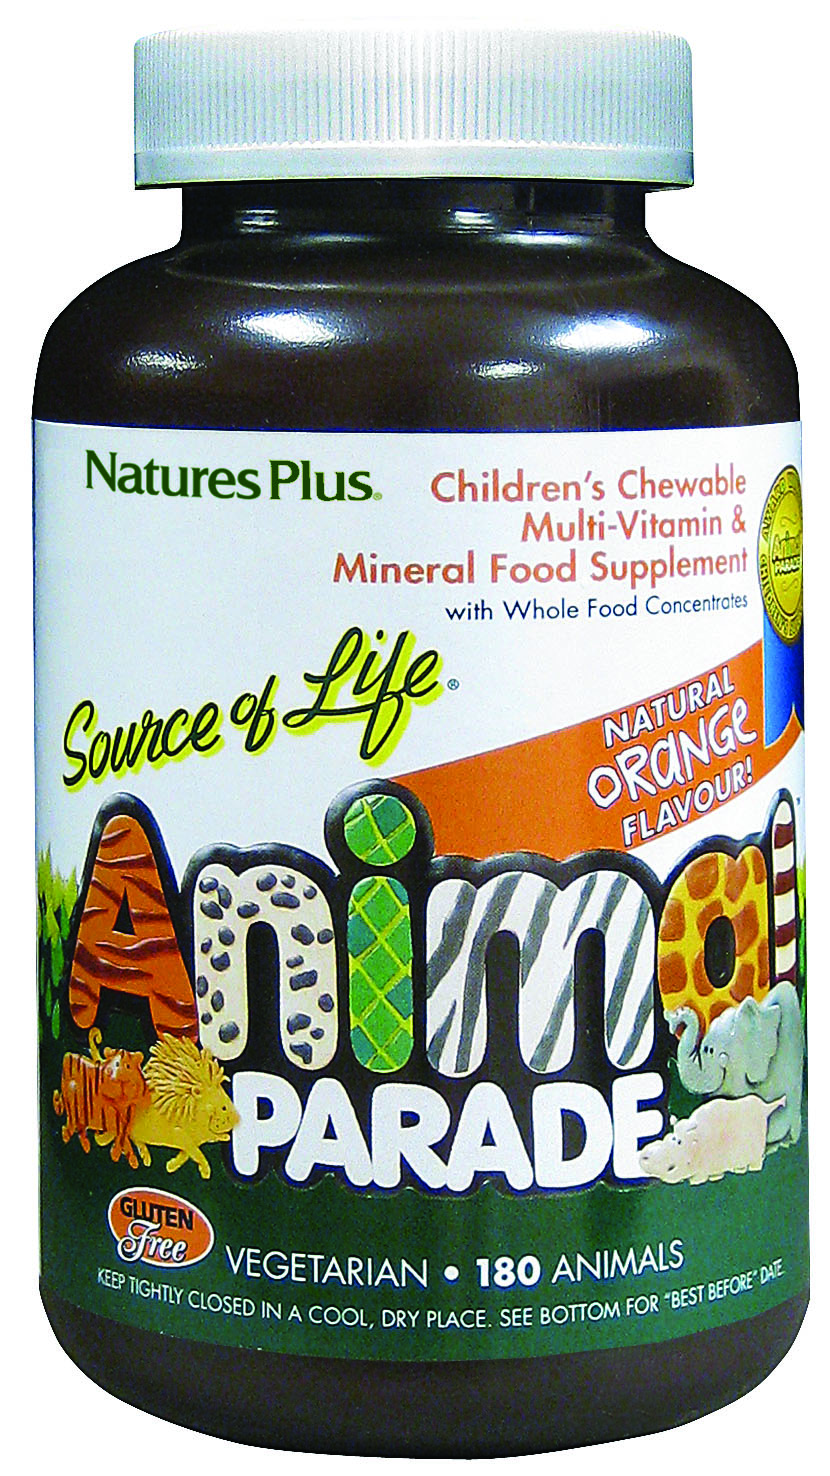 Source of Life Animal Parade Natural Orange Flavour 180's (Currently Unavailable)